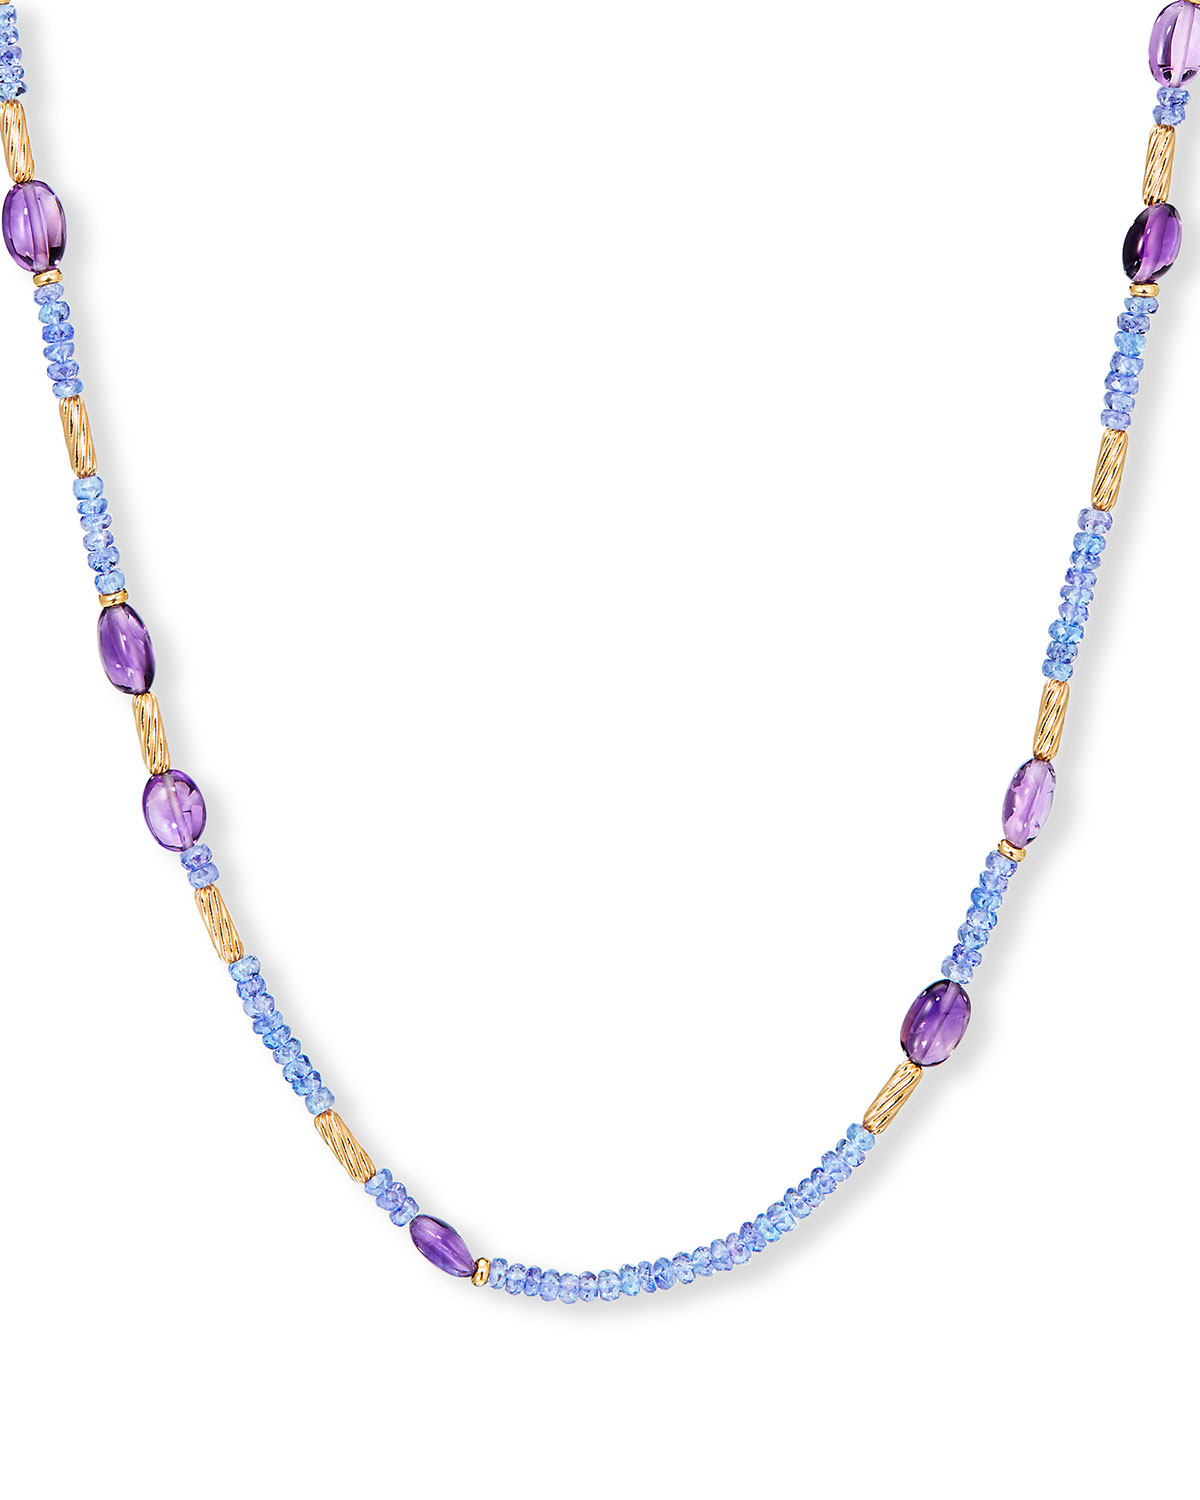 David Yurman Long Tweejoux Necklace with Amethyst and Tanzanite